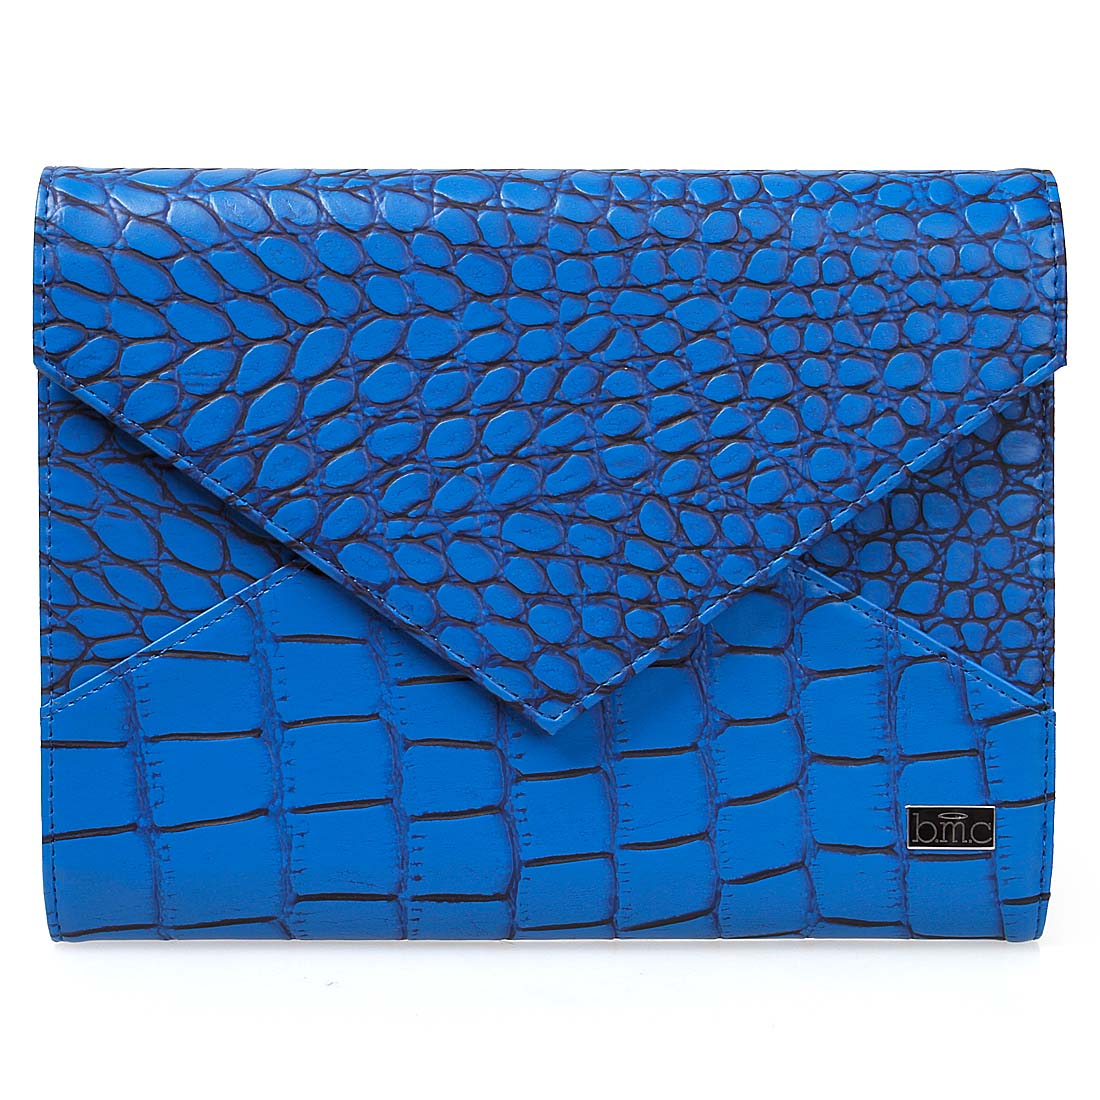 BMC Super Chic Cobalt Blue Envelope Clutch Style XL Nail Stamping Plate Carrier